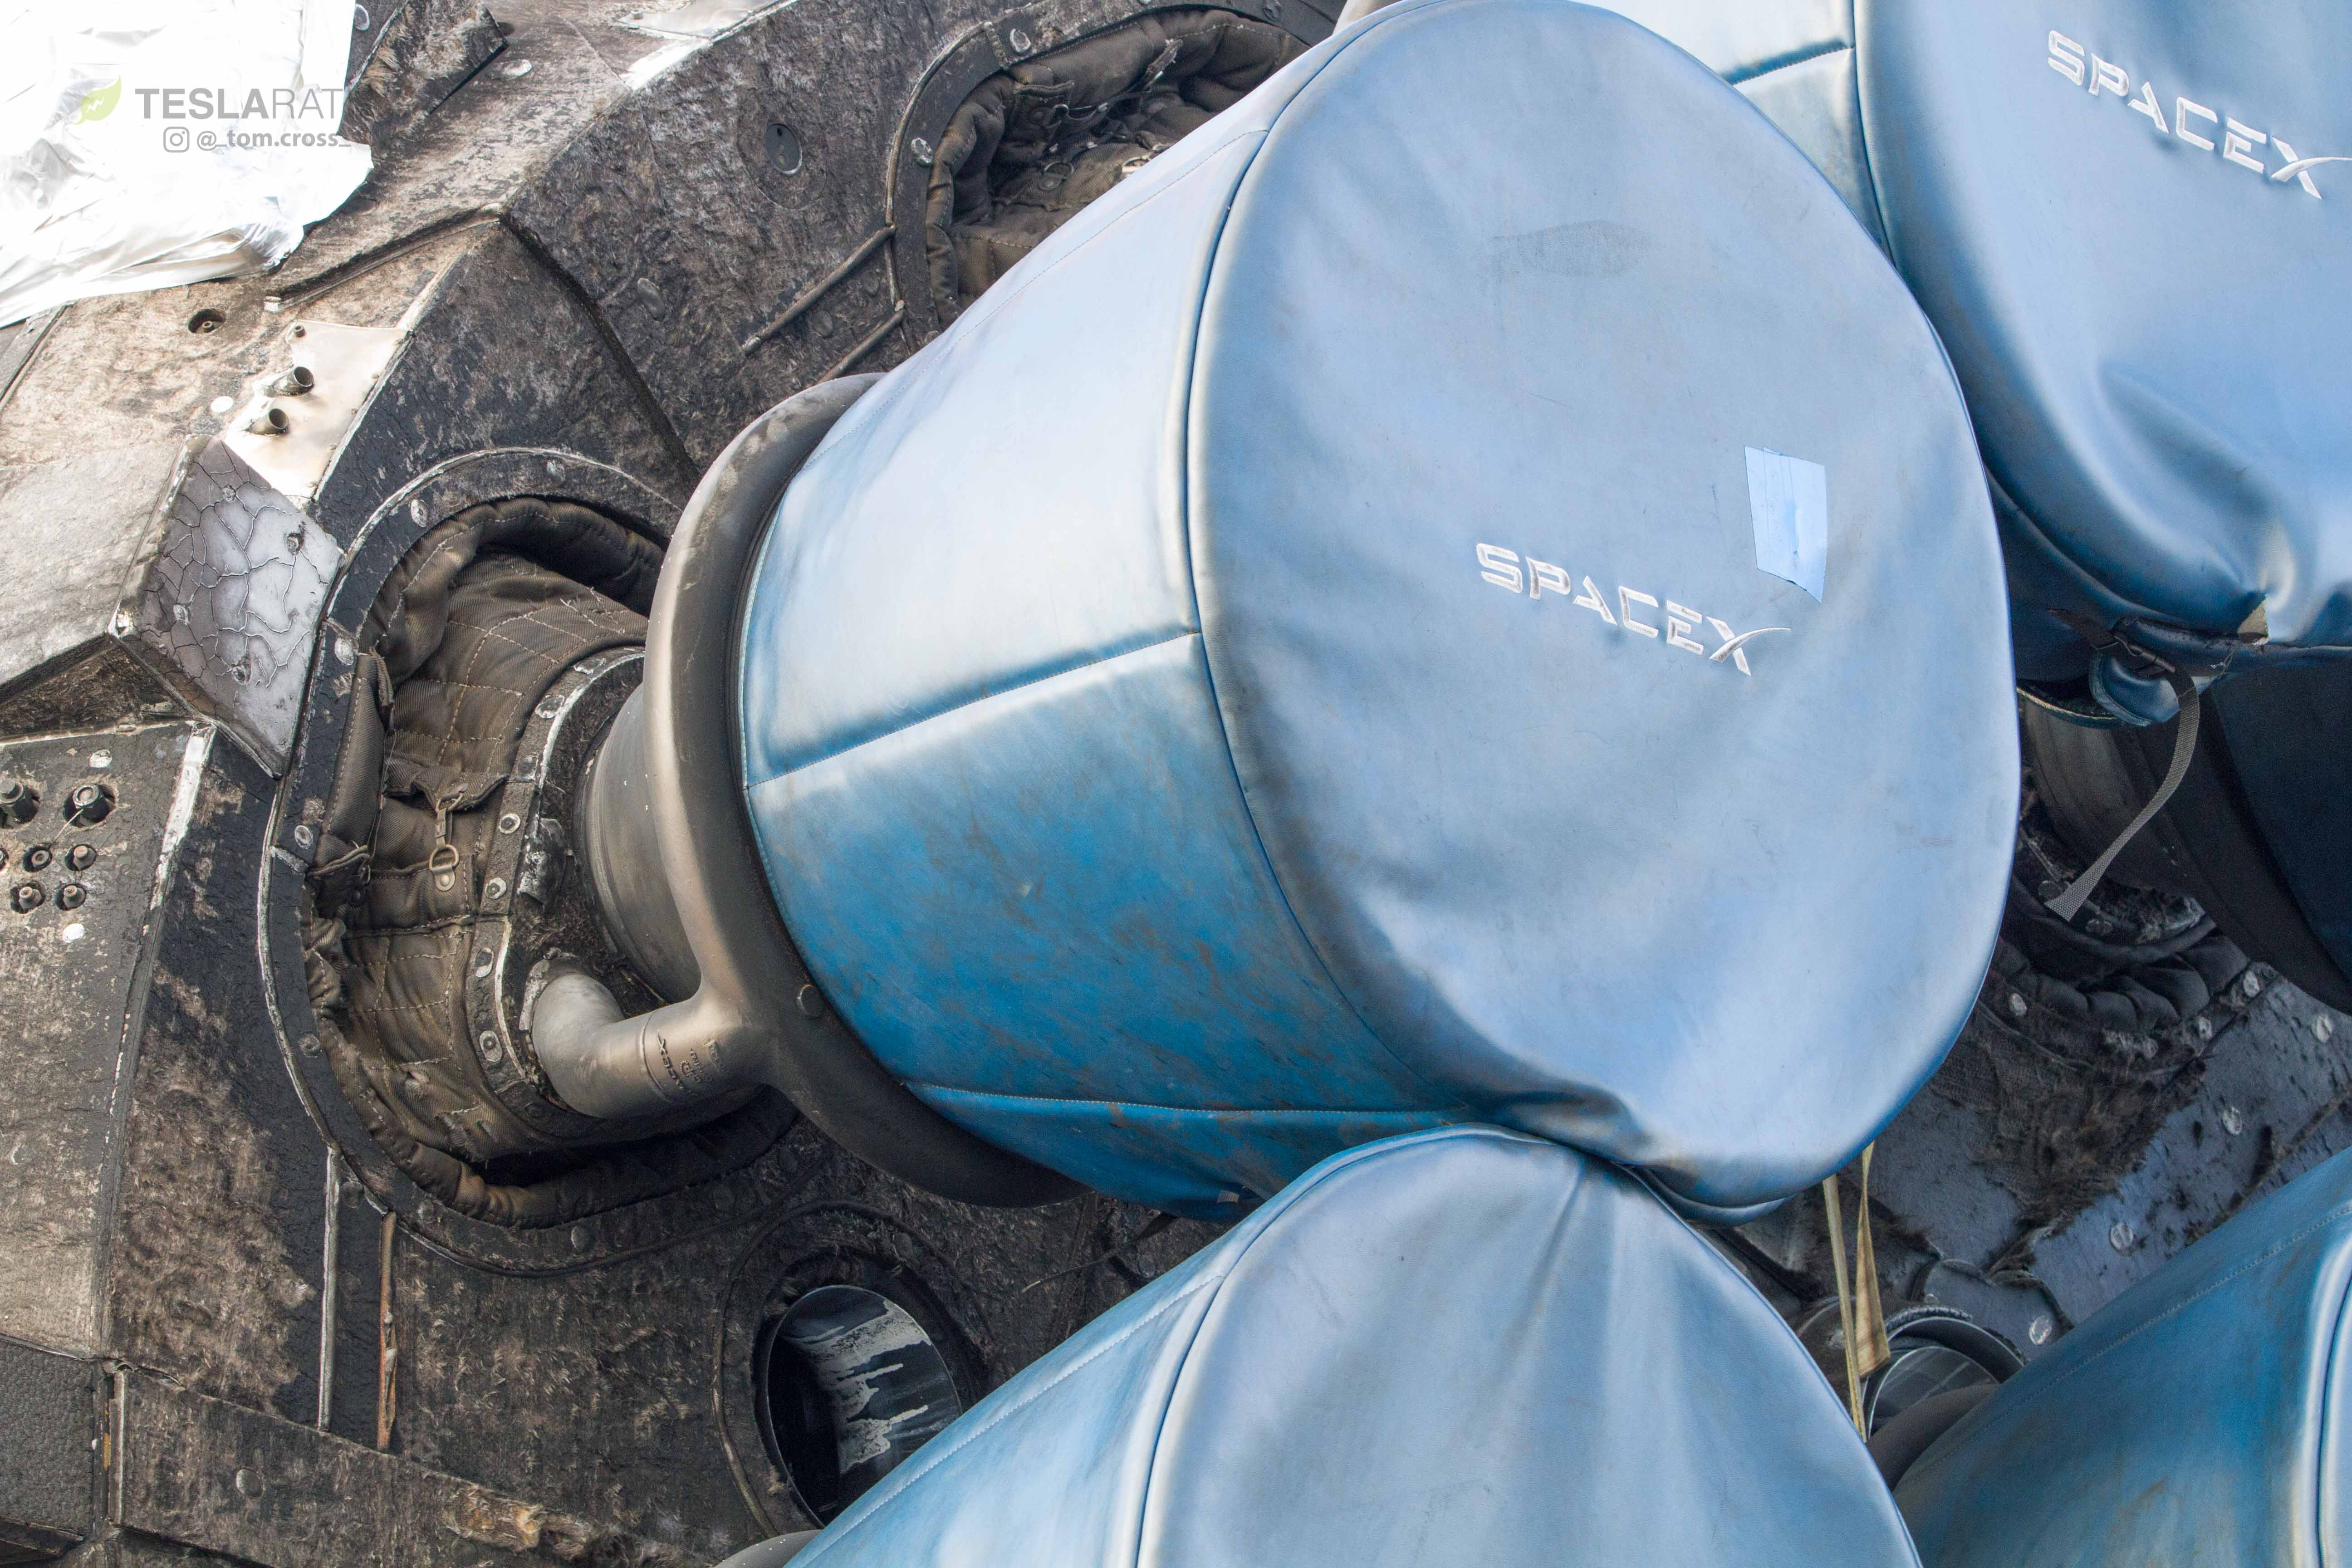 SpaceXs Used Falcon Heavy Booster Shown Off In Stunning